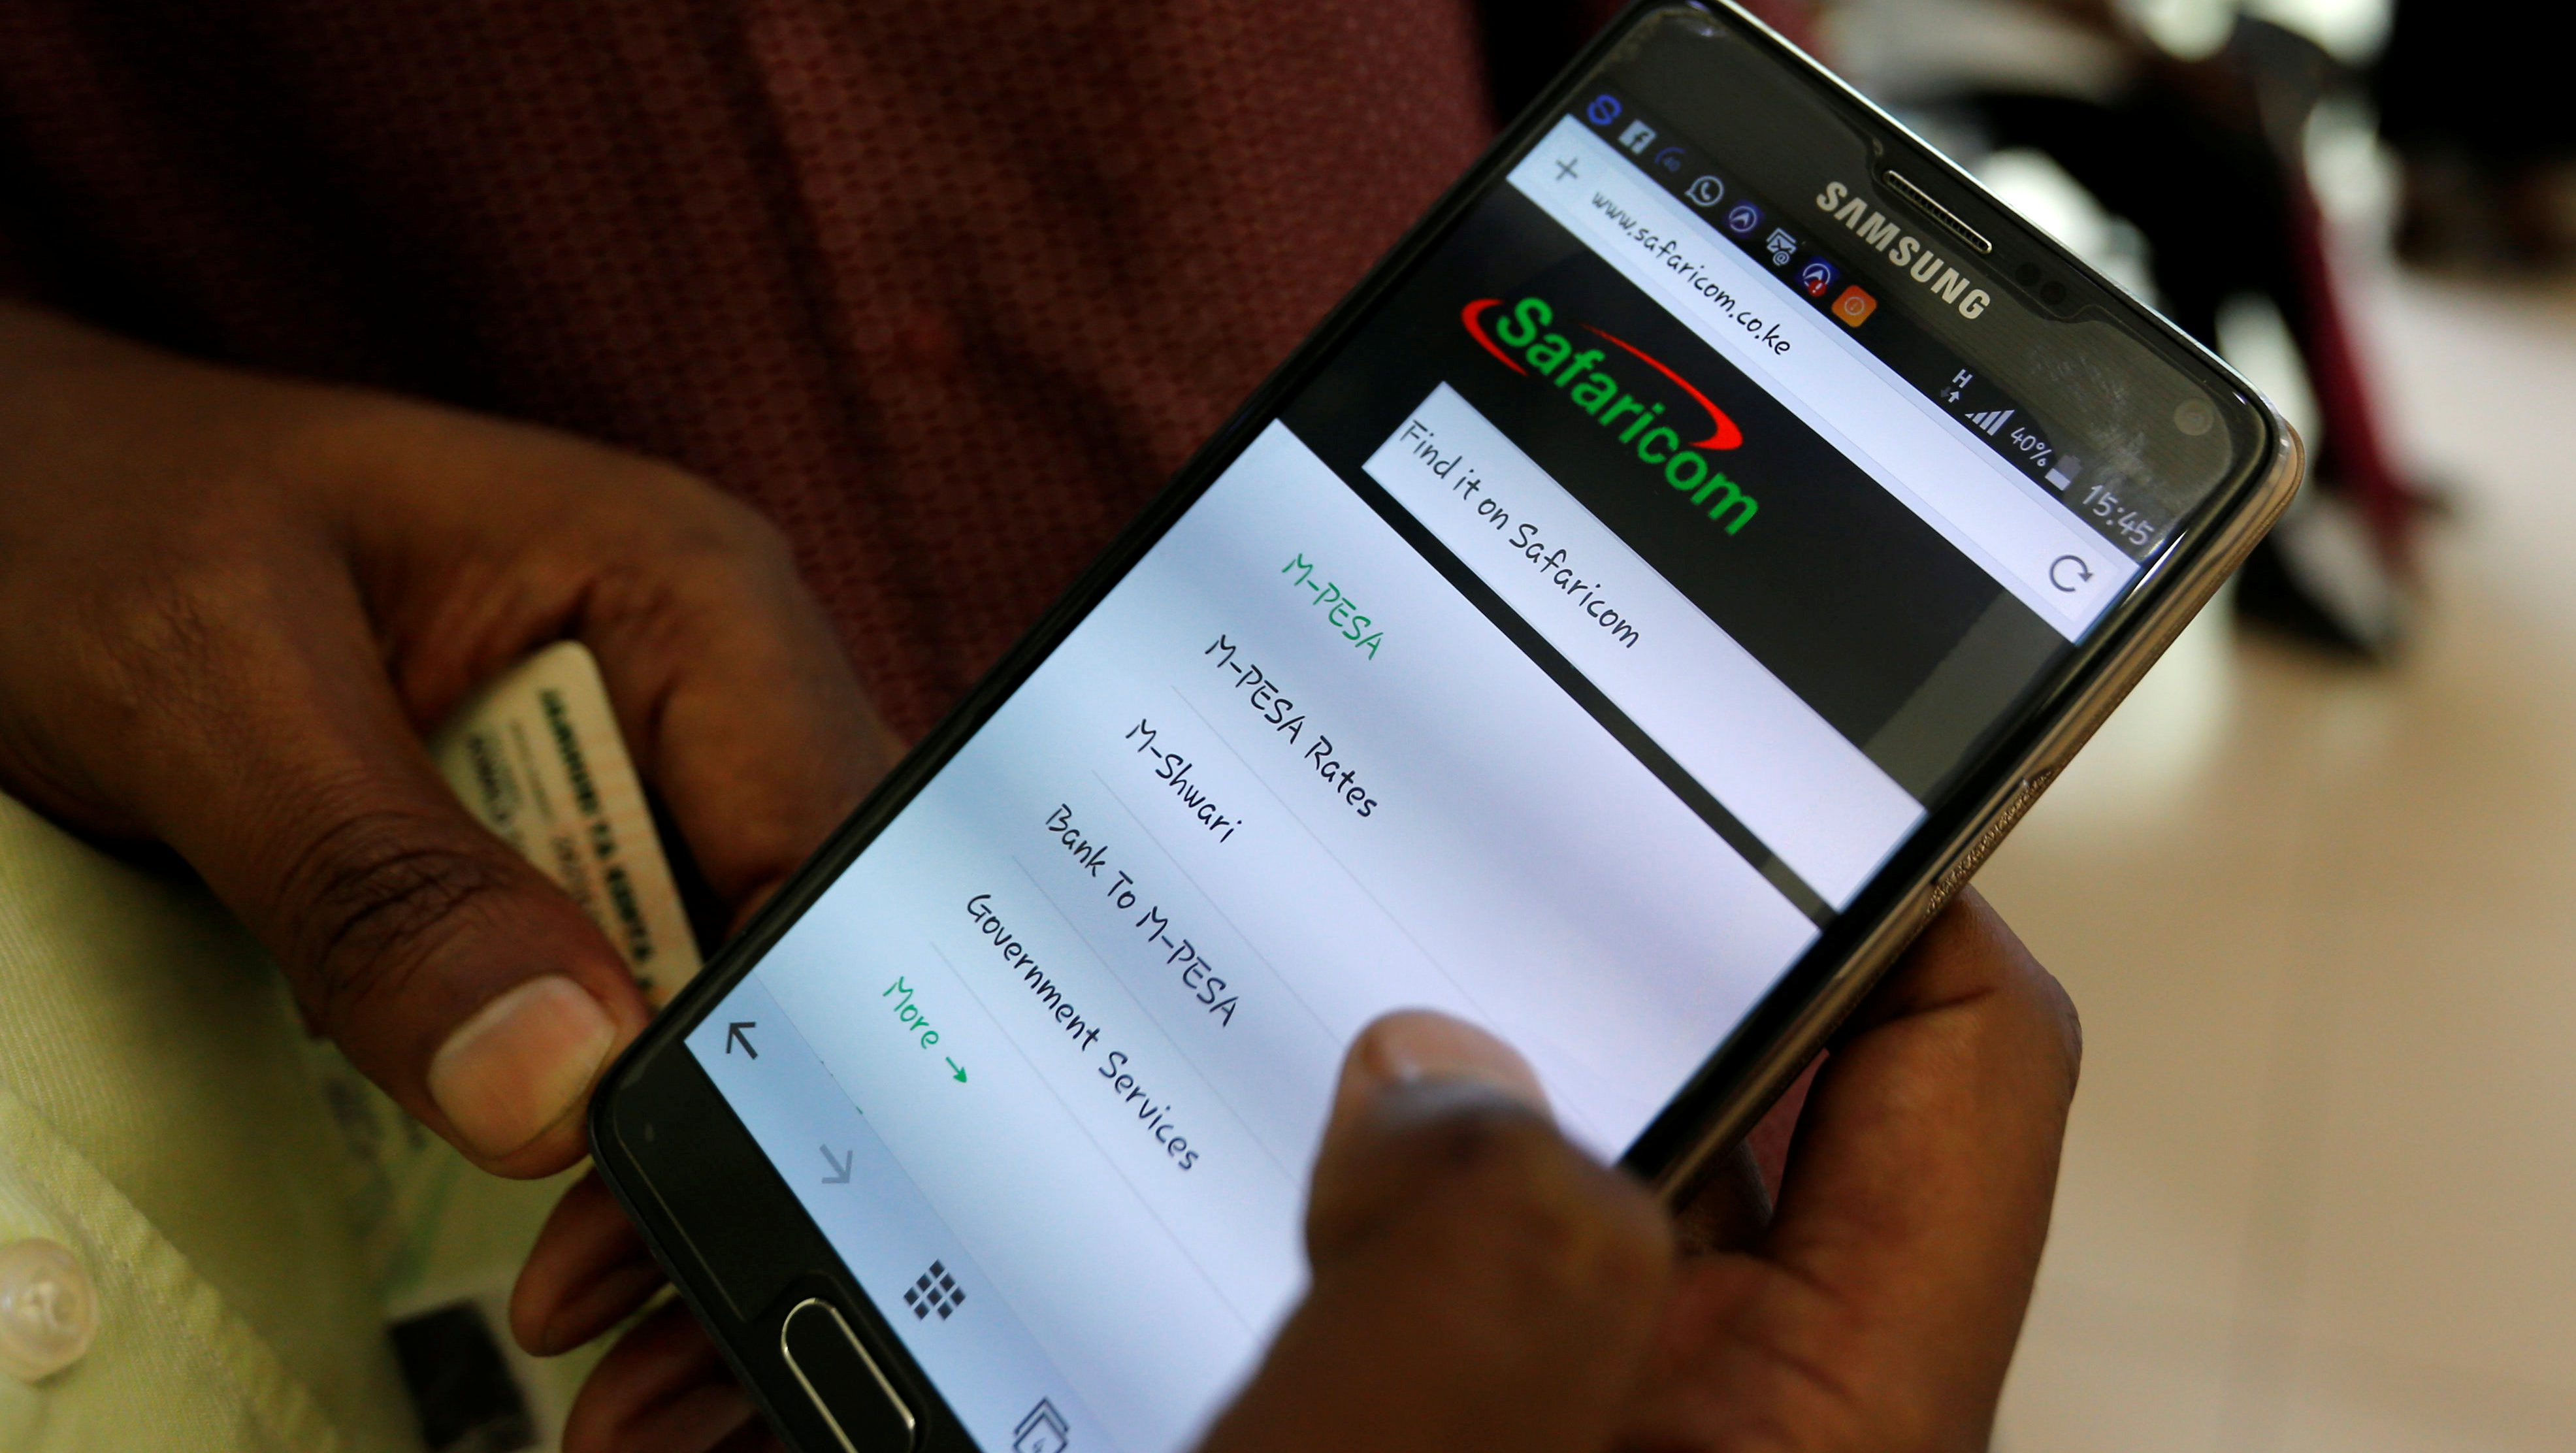 An employee assists a customer to set-up M-Pesa money transfer servive on his handset inside a mobile phone care centre operated by Kenyan's telecom operator Safaricom; in the central business district of Kenya's capital Nairobi